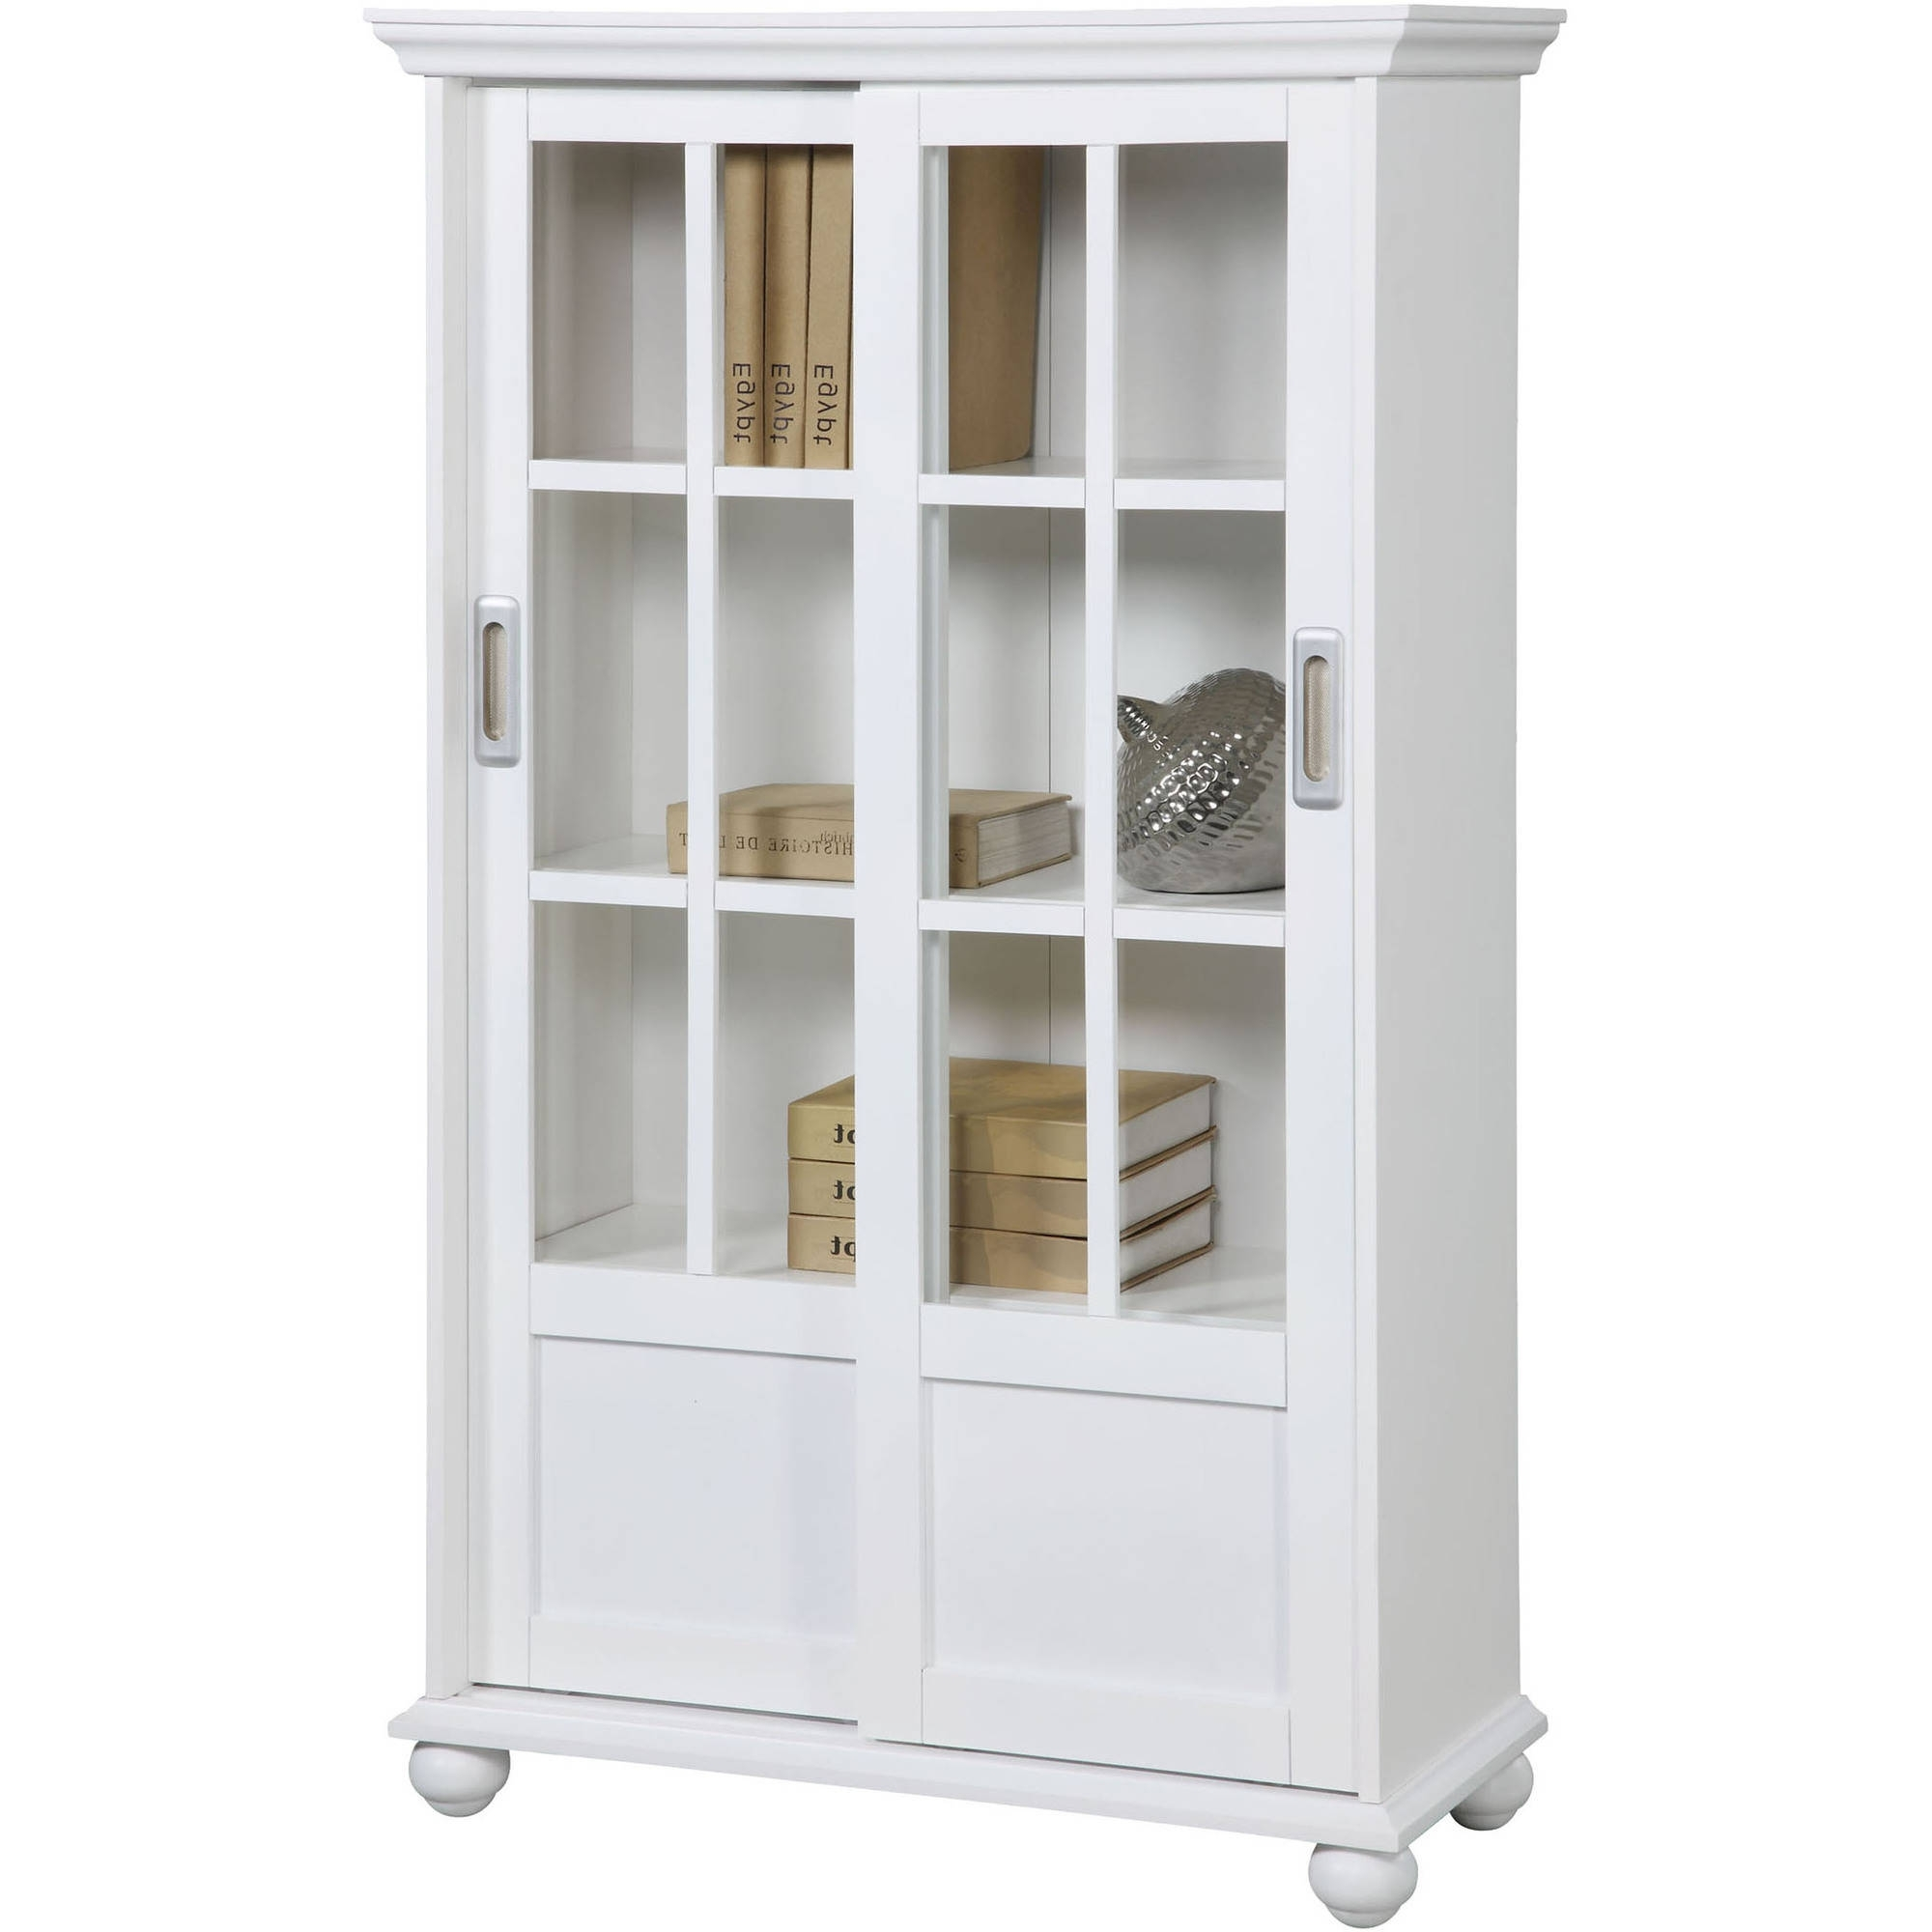 Ameriwood Home Aaron Lane Bookcase With Sliding Glass Doors Intended For Trendy Walmart Bookcases (View 15 of 15)